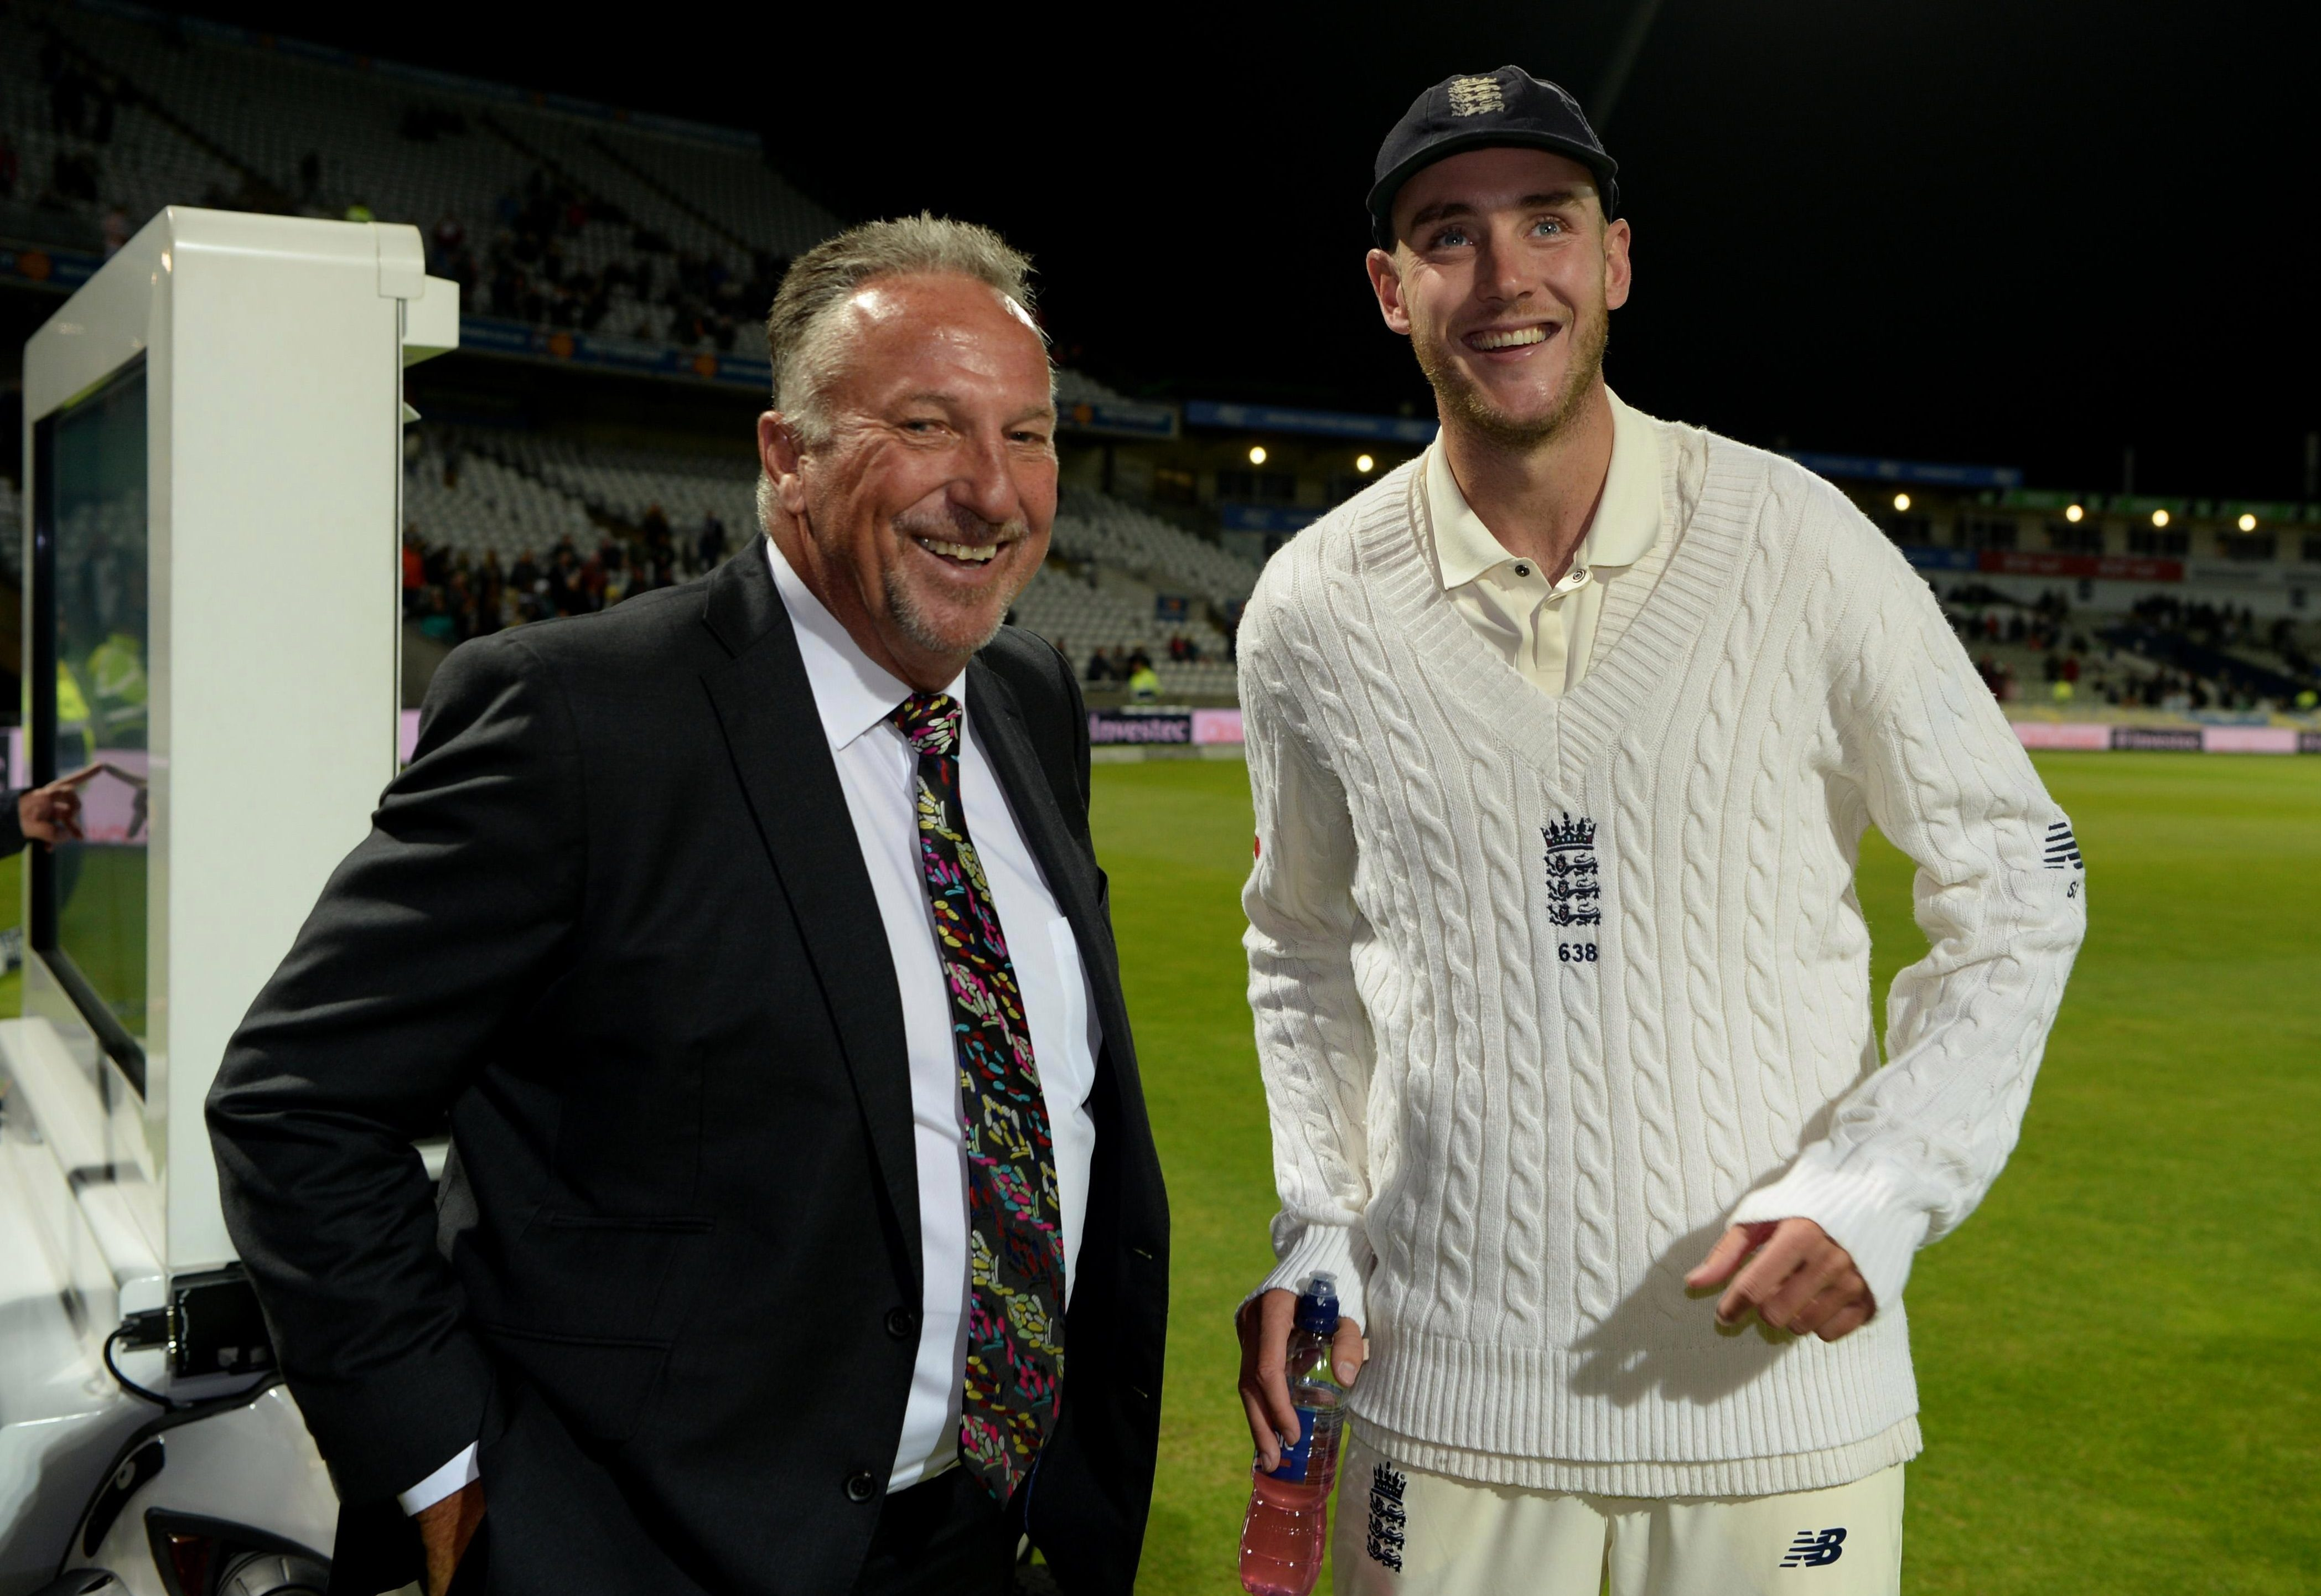 Stuart Broad is second on the list of England Test wicket takers ahead of Ian Botham but is over 100 behind Anderson